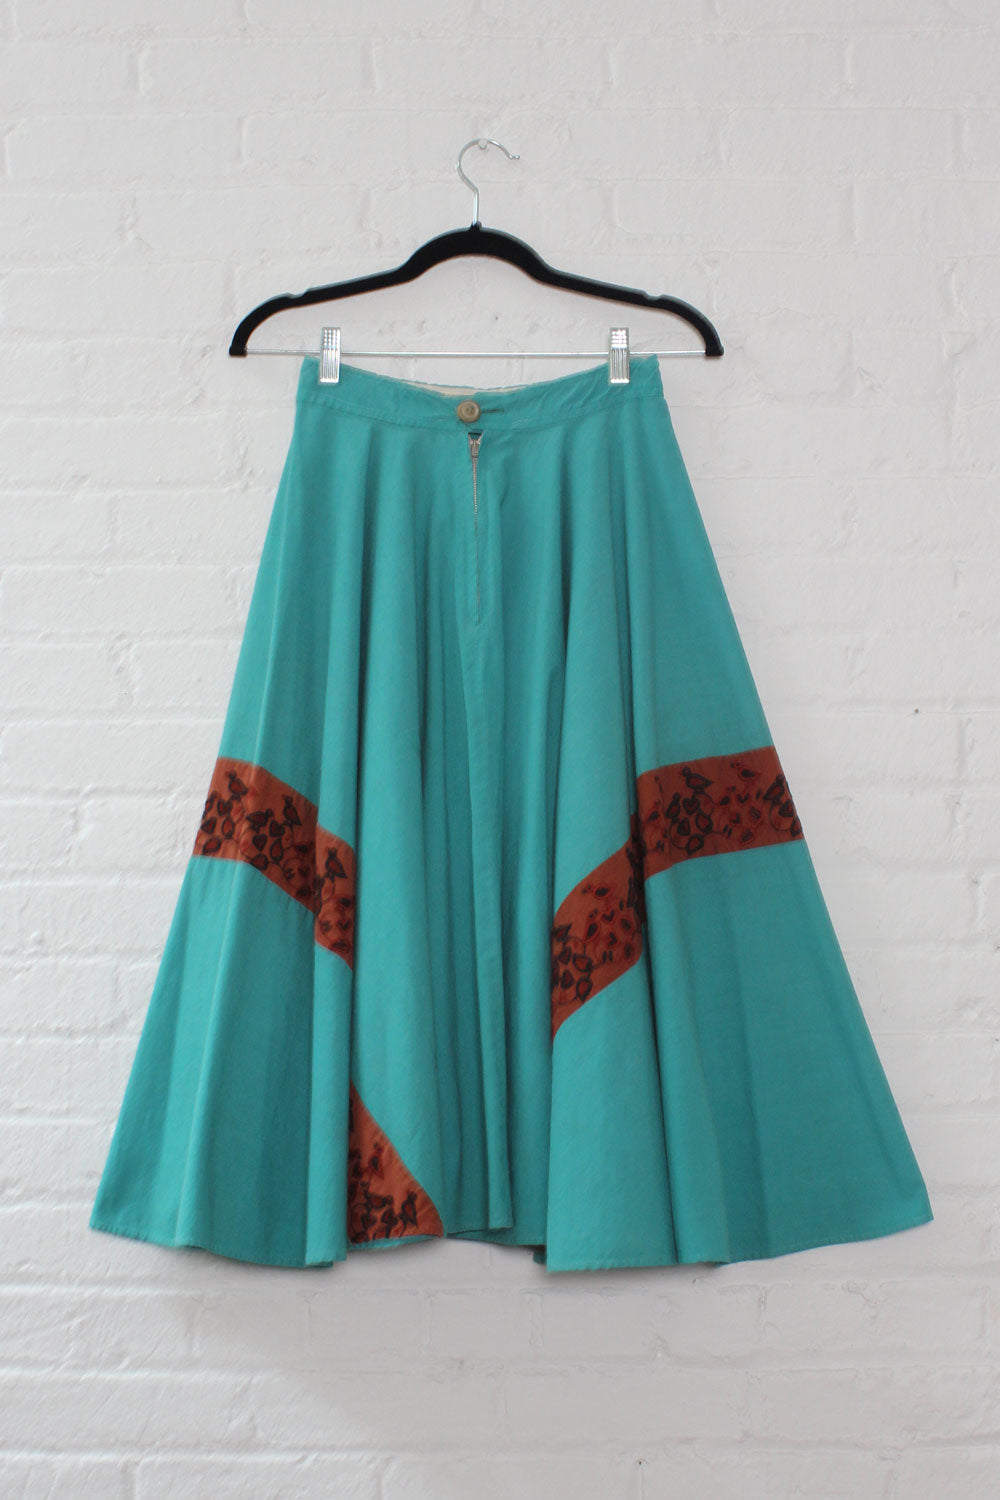 Sandeze Cotton Circle Skirt XS